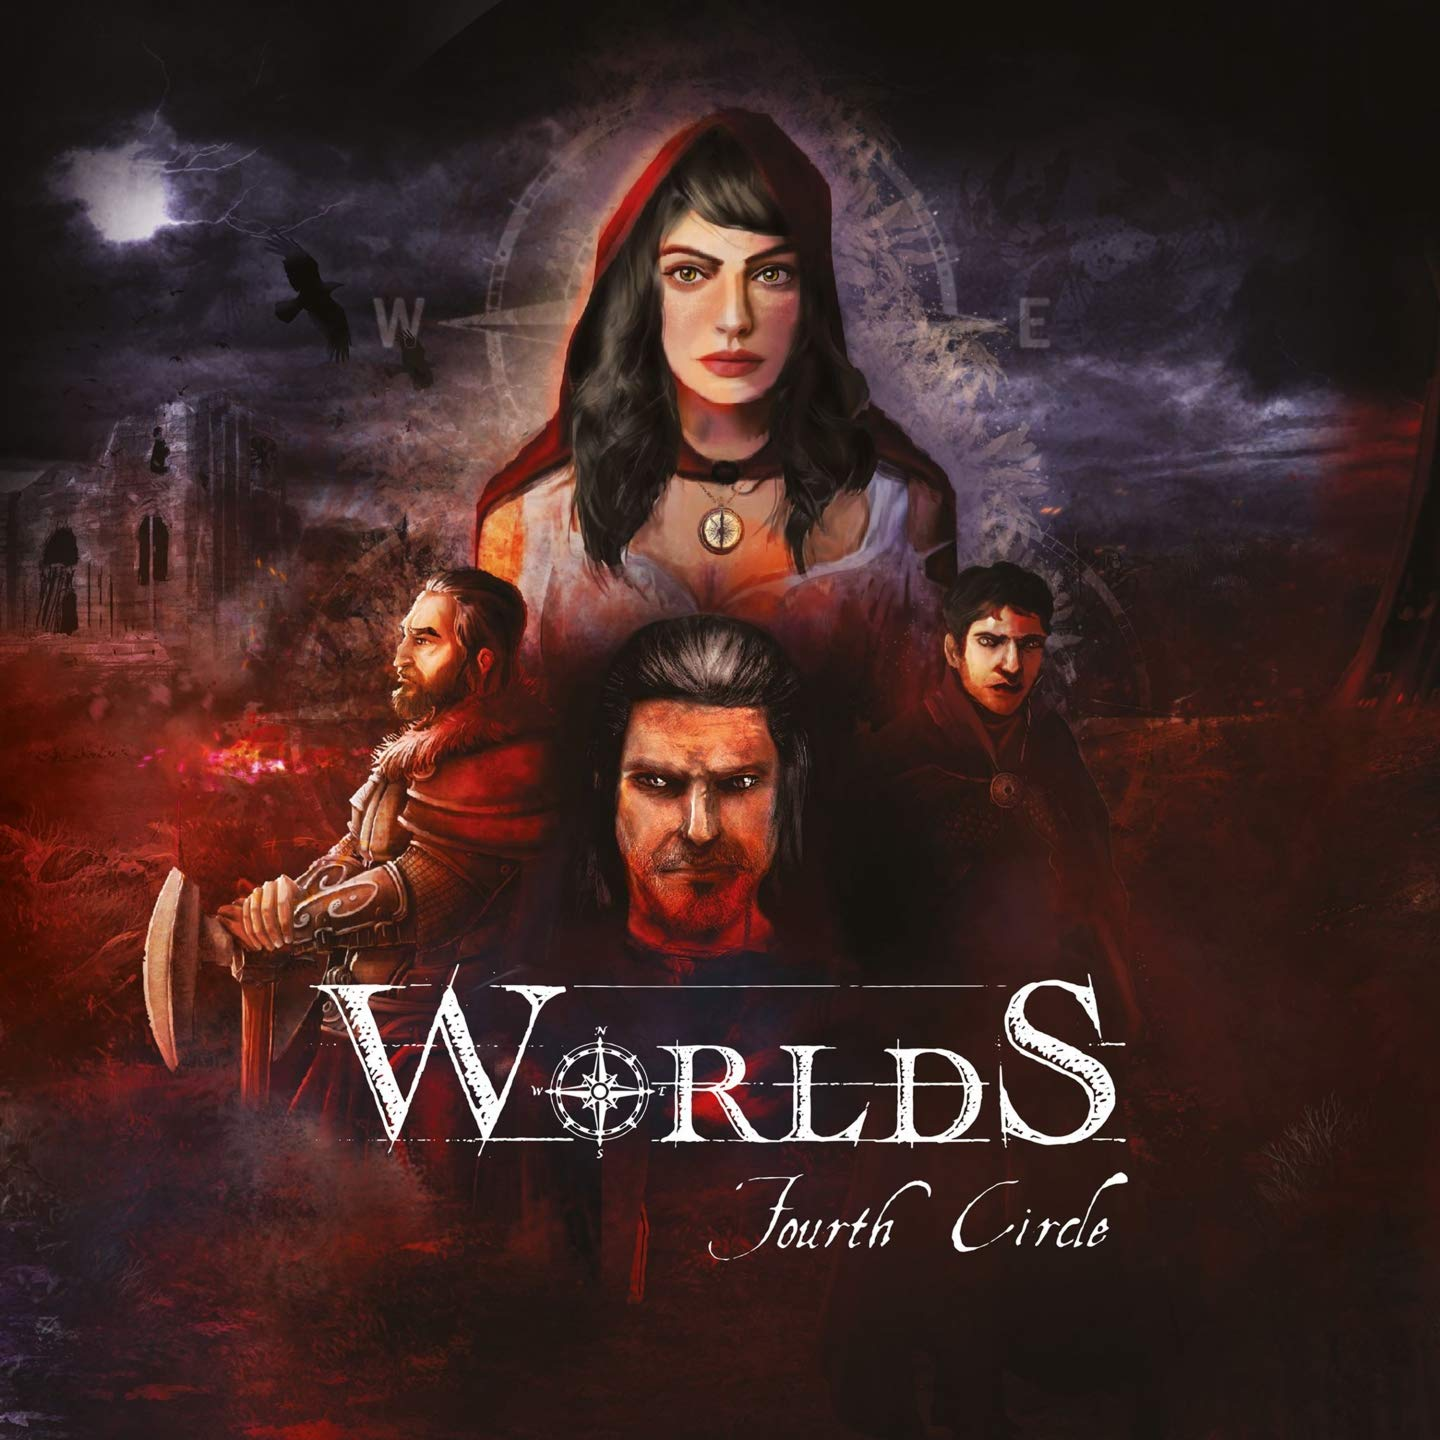 Fourth Circle - Worlds (2019) [FLAC] Download